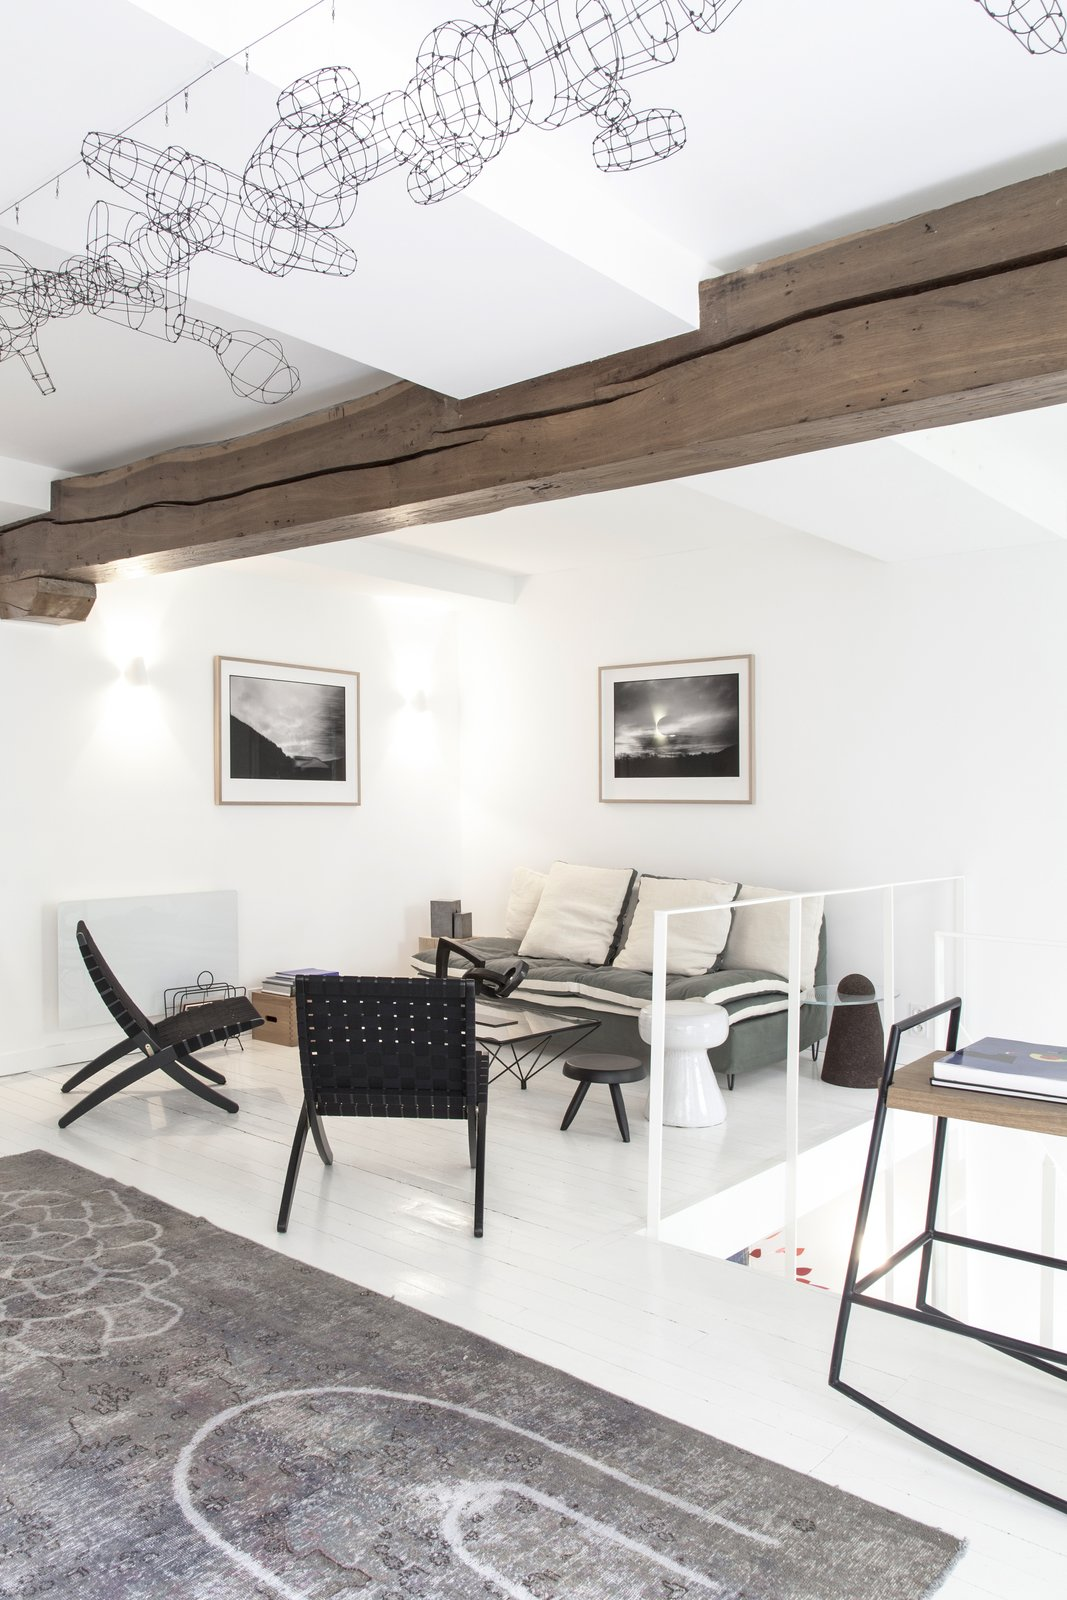 Living Room, Chair, Coffee Tables, Rug Floor, Sofa, Bench, and Light Hardwood Floor Floors have been covered by a thick coat of white paint.     Photo 7 of 14 in A Parisian Townhouse Is Reborn as a Luminous Art Gallery